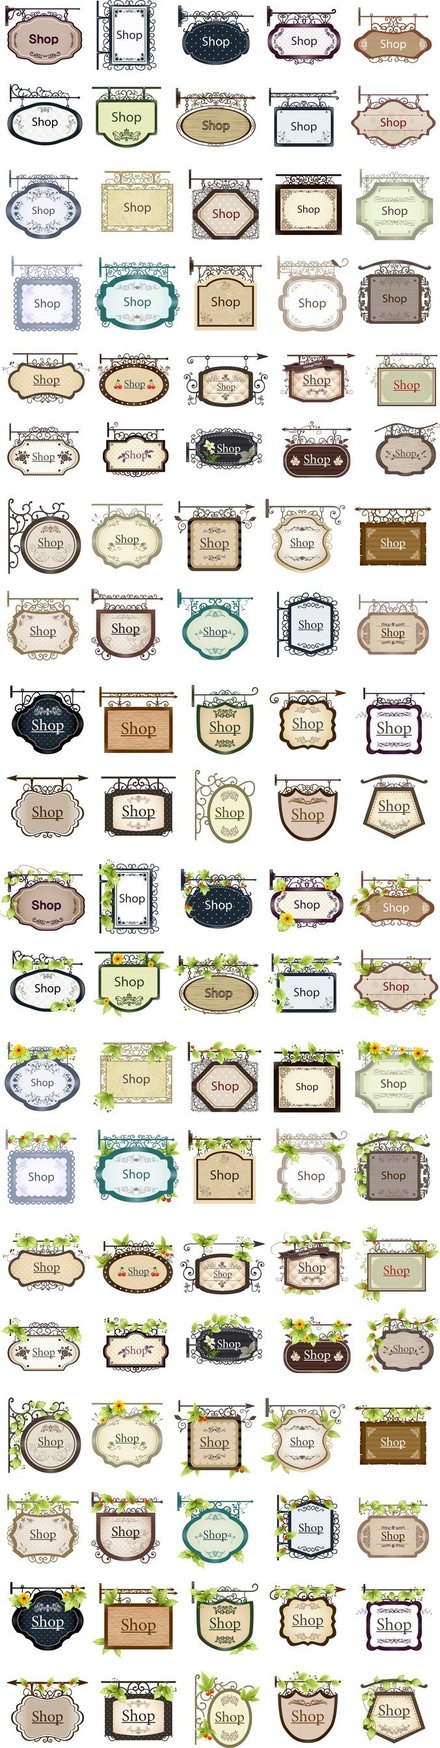 100 Decorative Vector Listed Shop